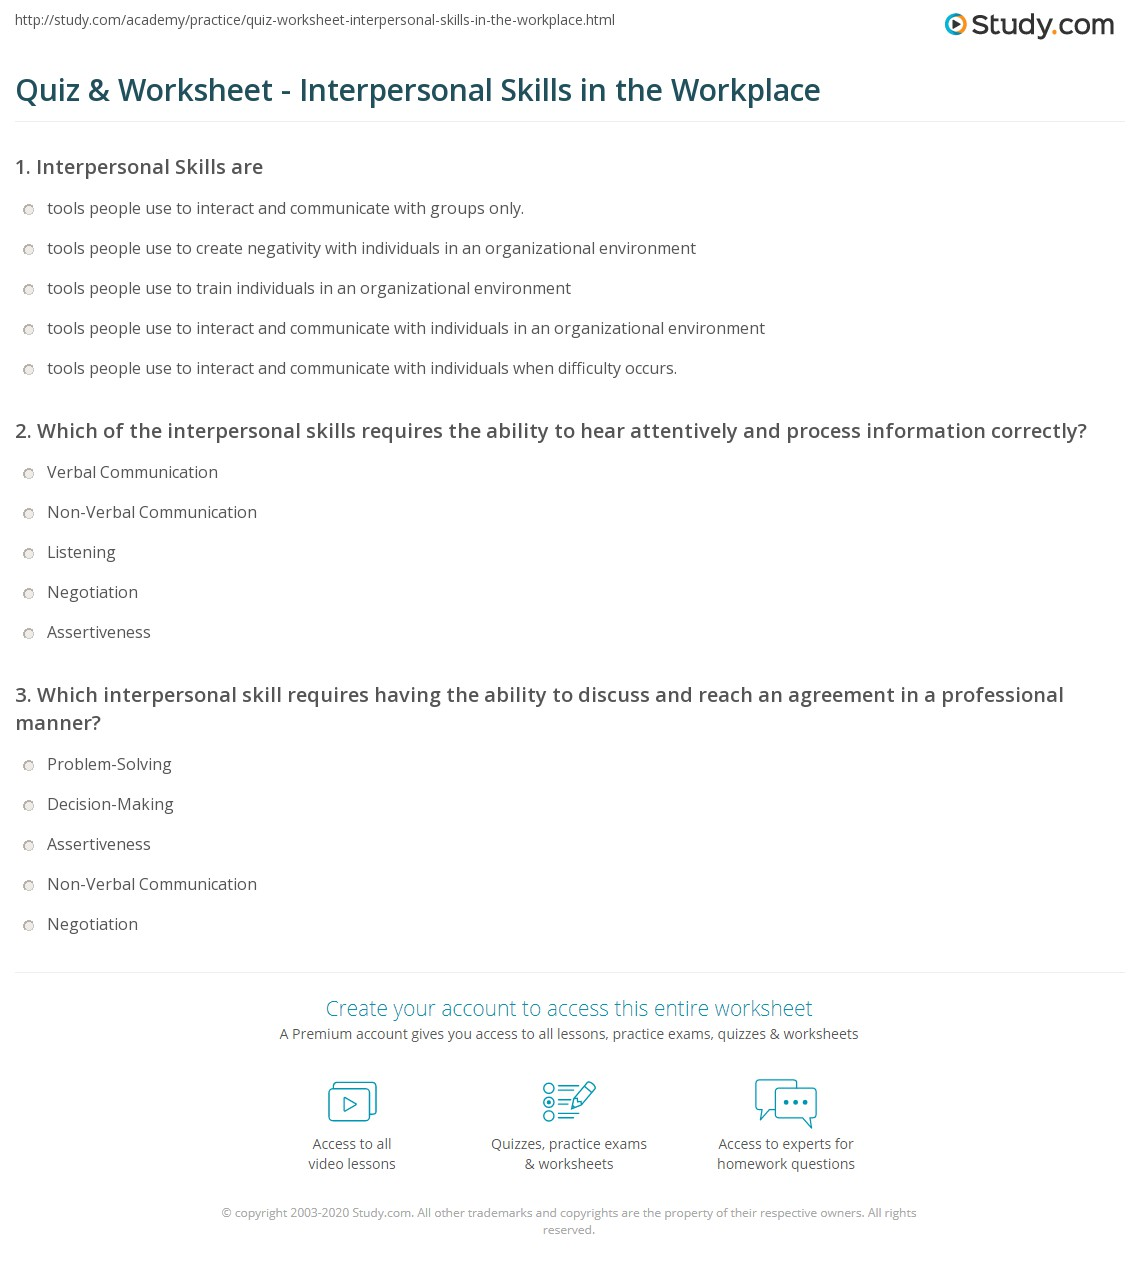 Quiz & Worksheet Interpersonal Skills in the Workplace